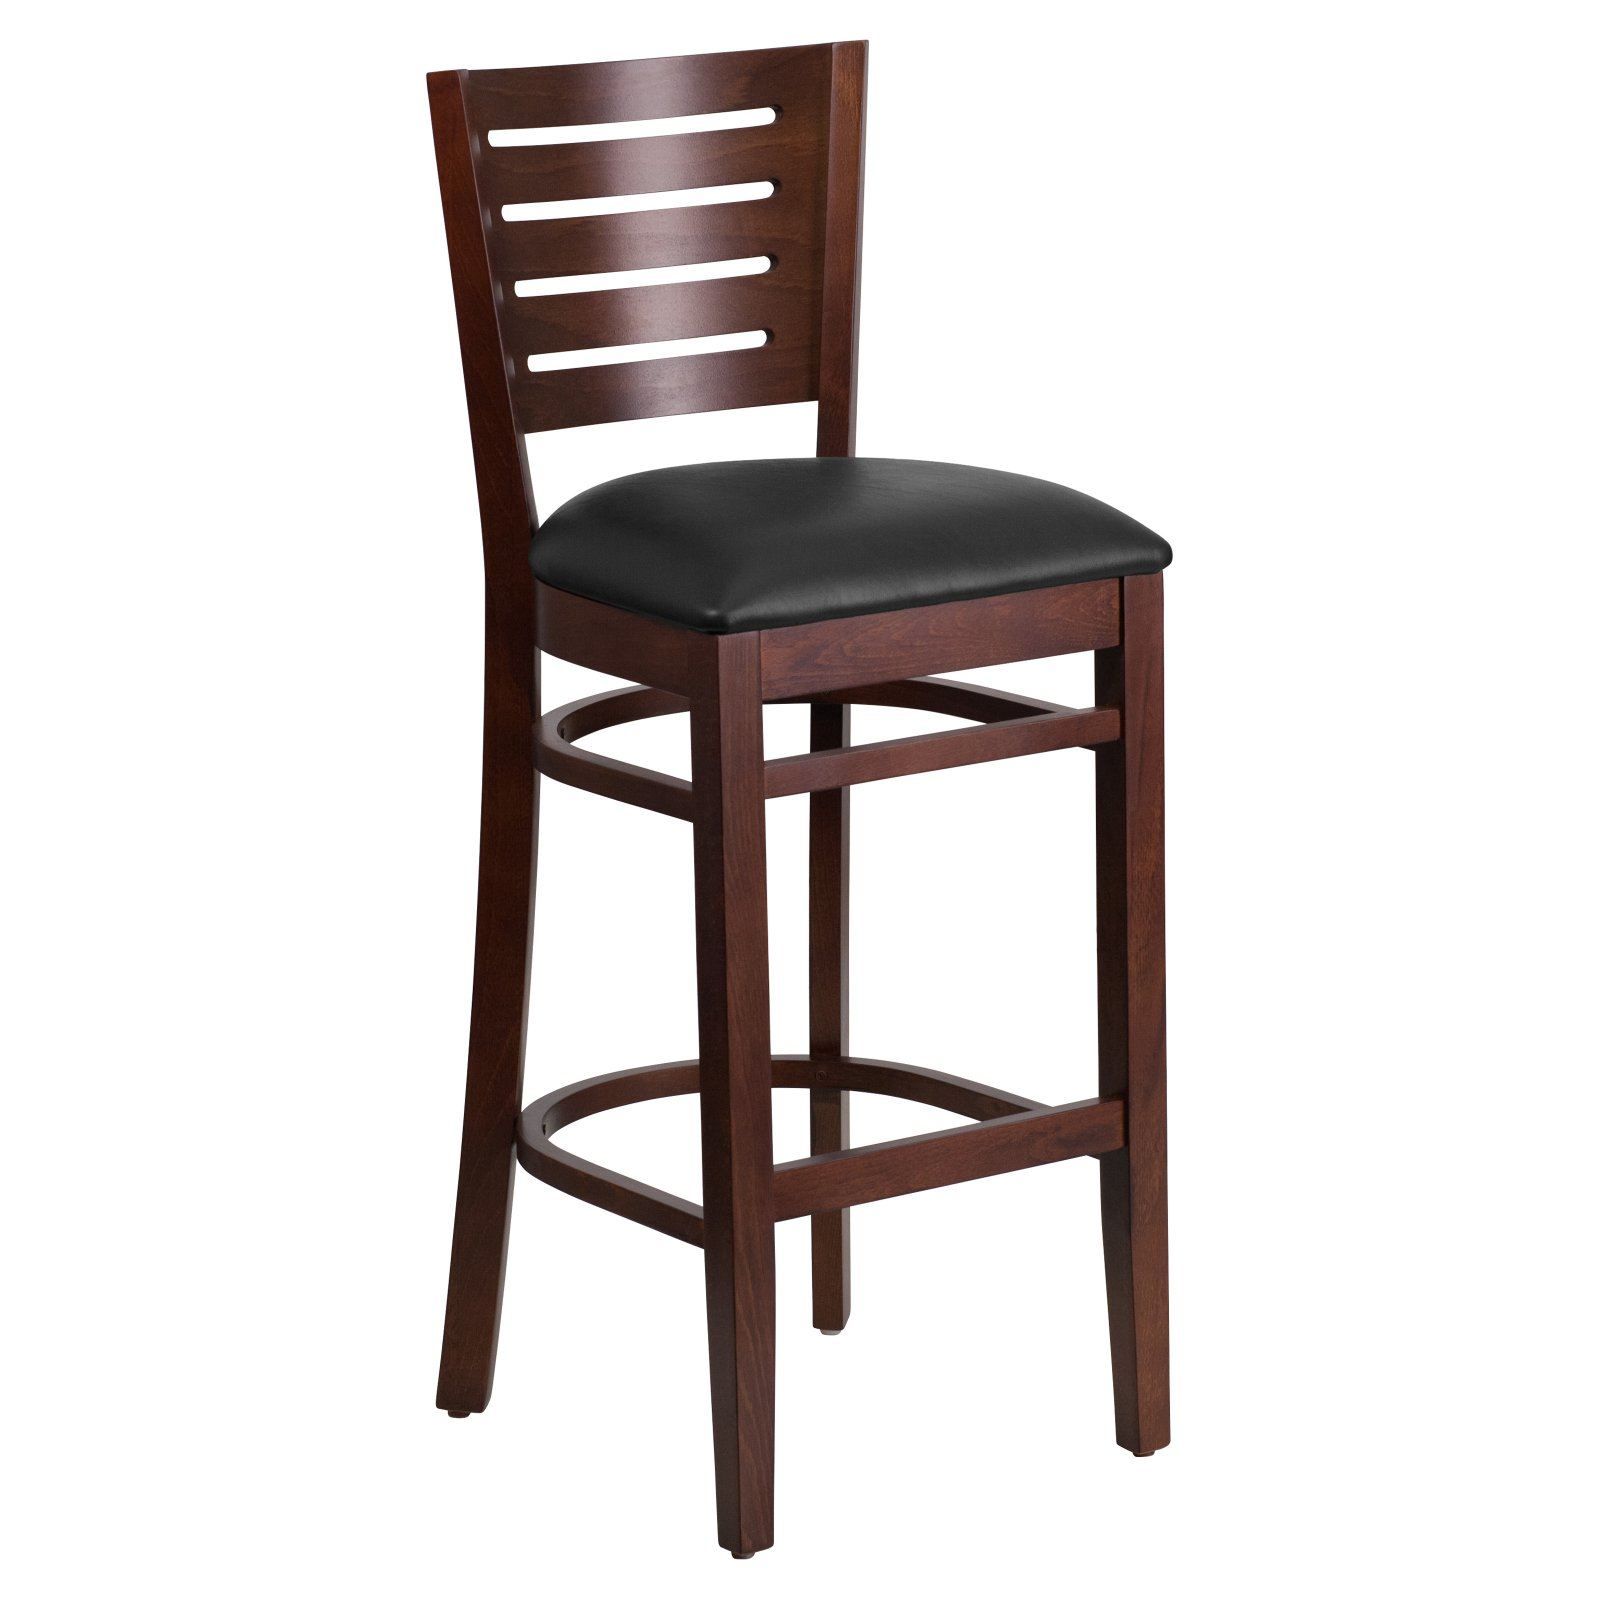 Merveilleux Flash Furniture Darby Series Slat Back Walnut Wooden Restaurant Barstool,  Vinyl Seat, Multiple Colors